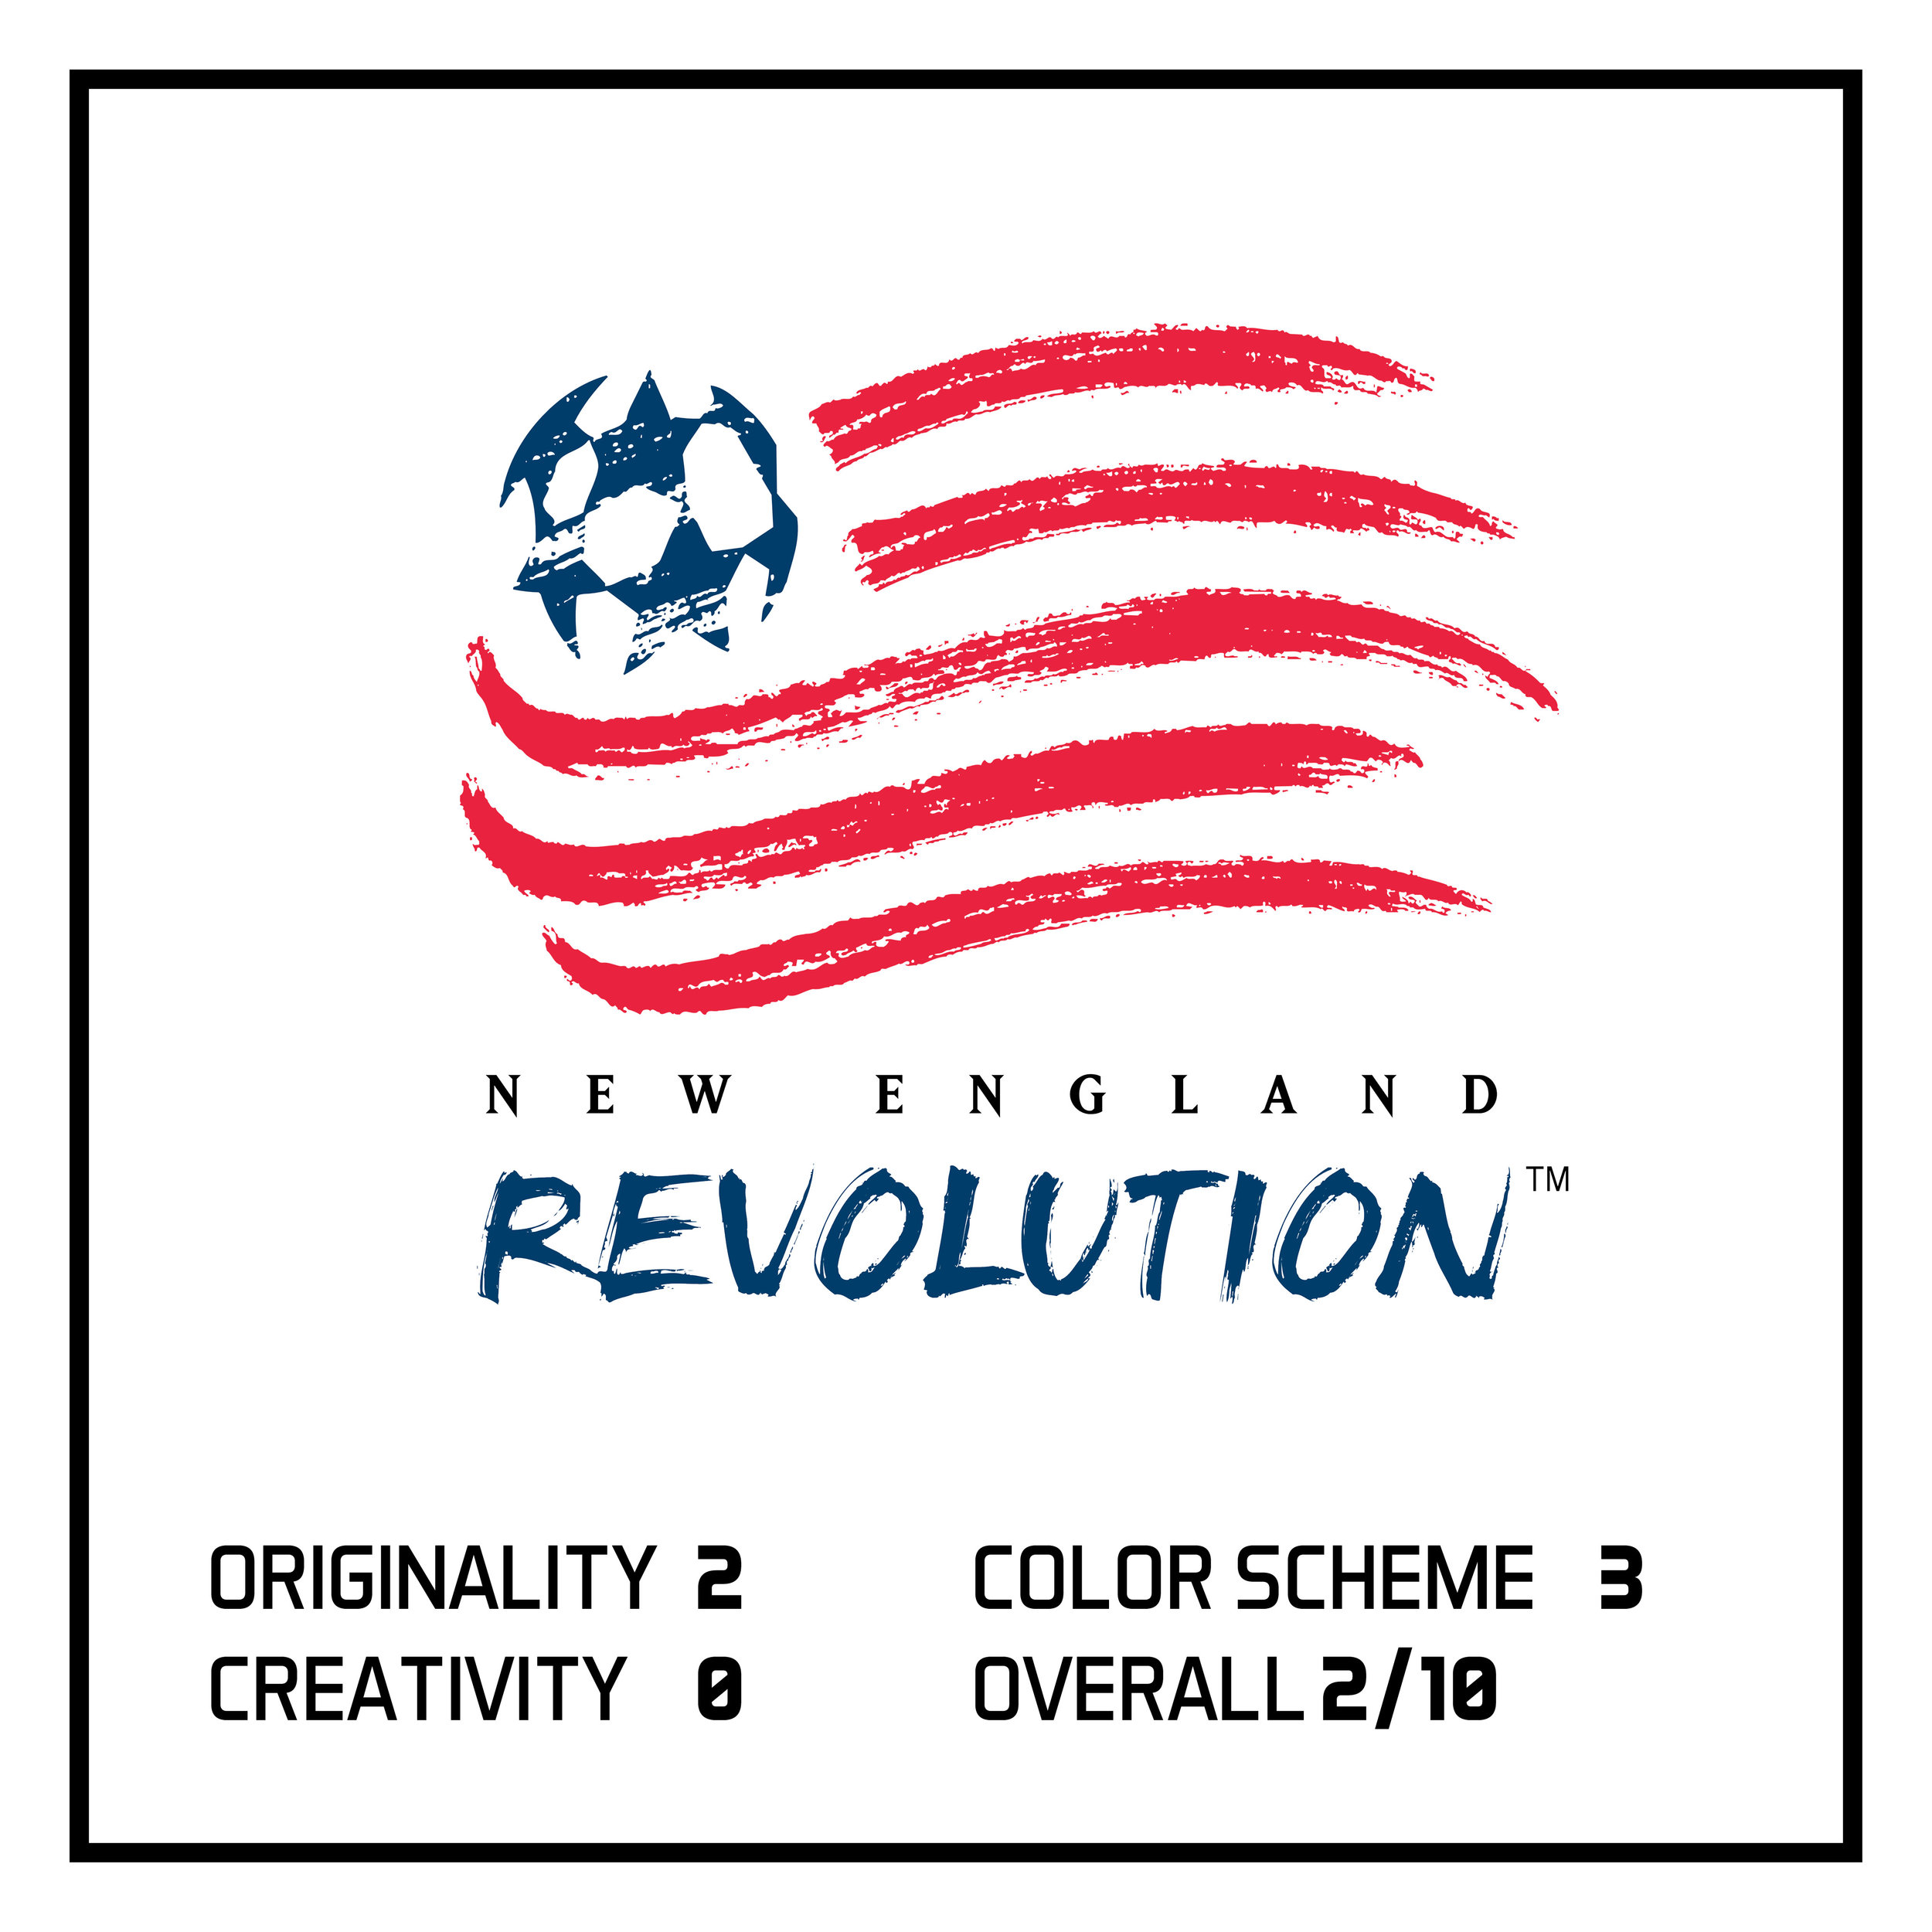 In my first BottomFive series, New England Revolution received the lowest score.  View here